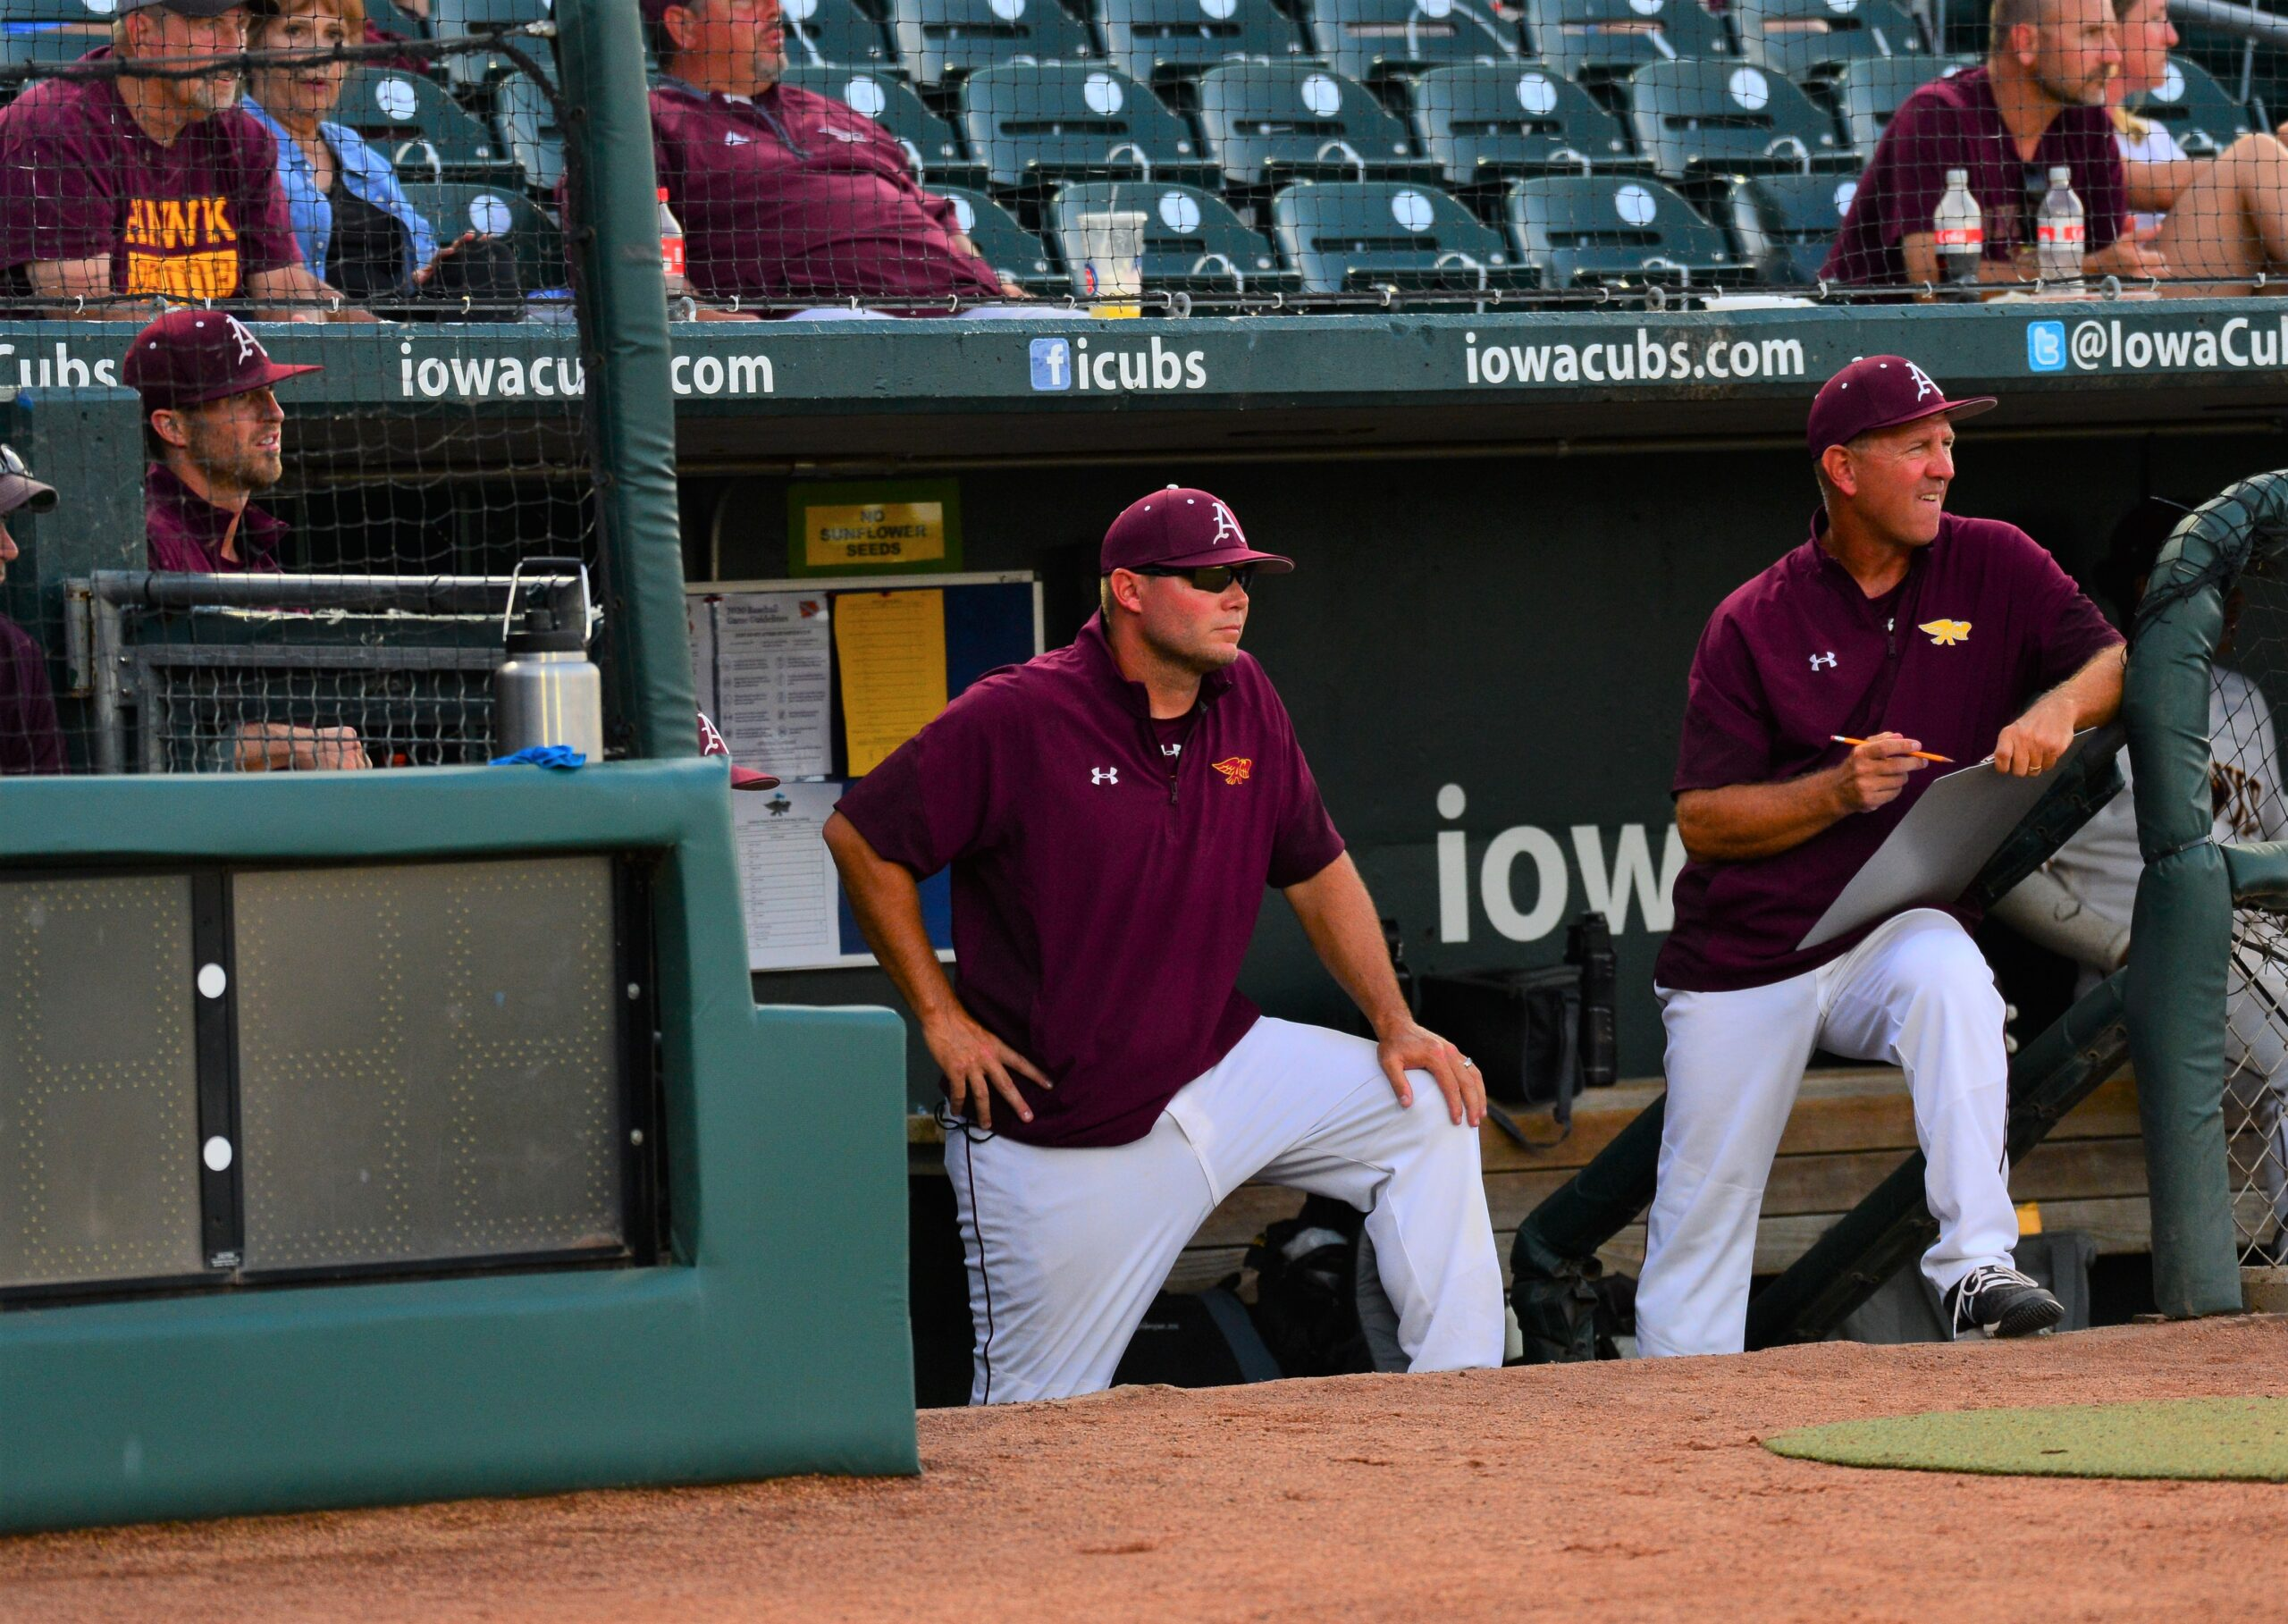 Dowling's misfortune allows Hawks to earn No. 1 seed, bye into substate final